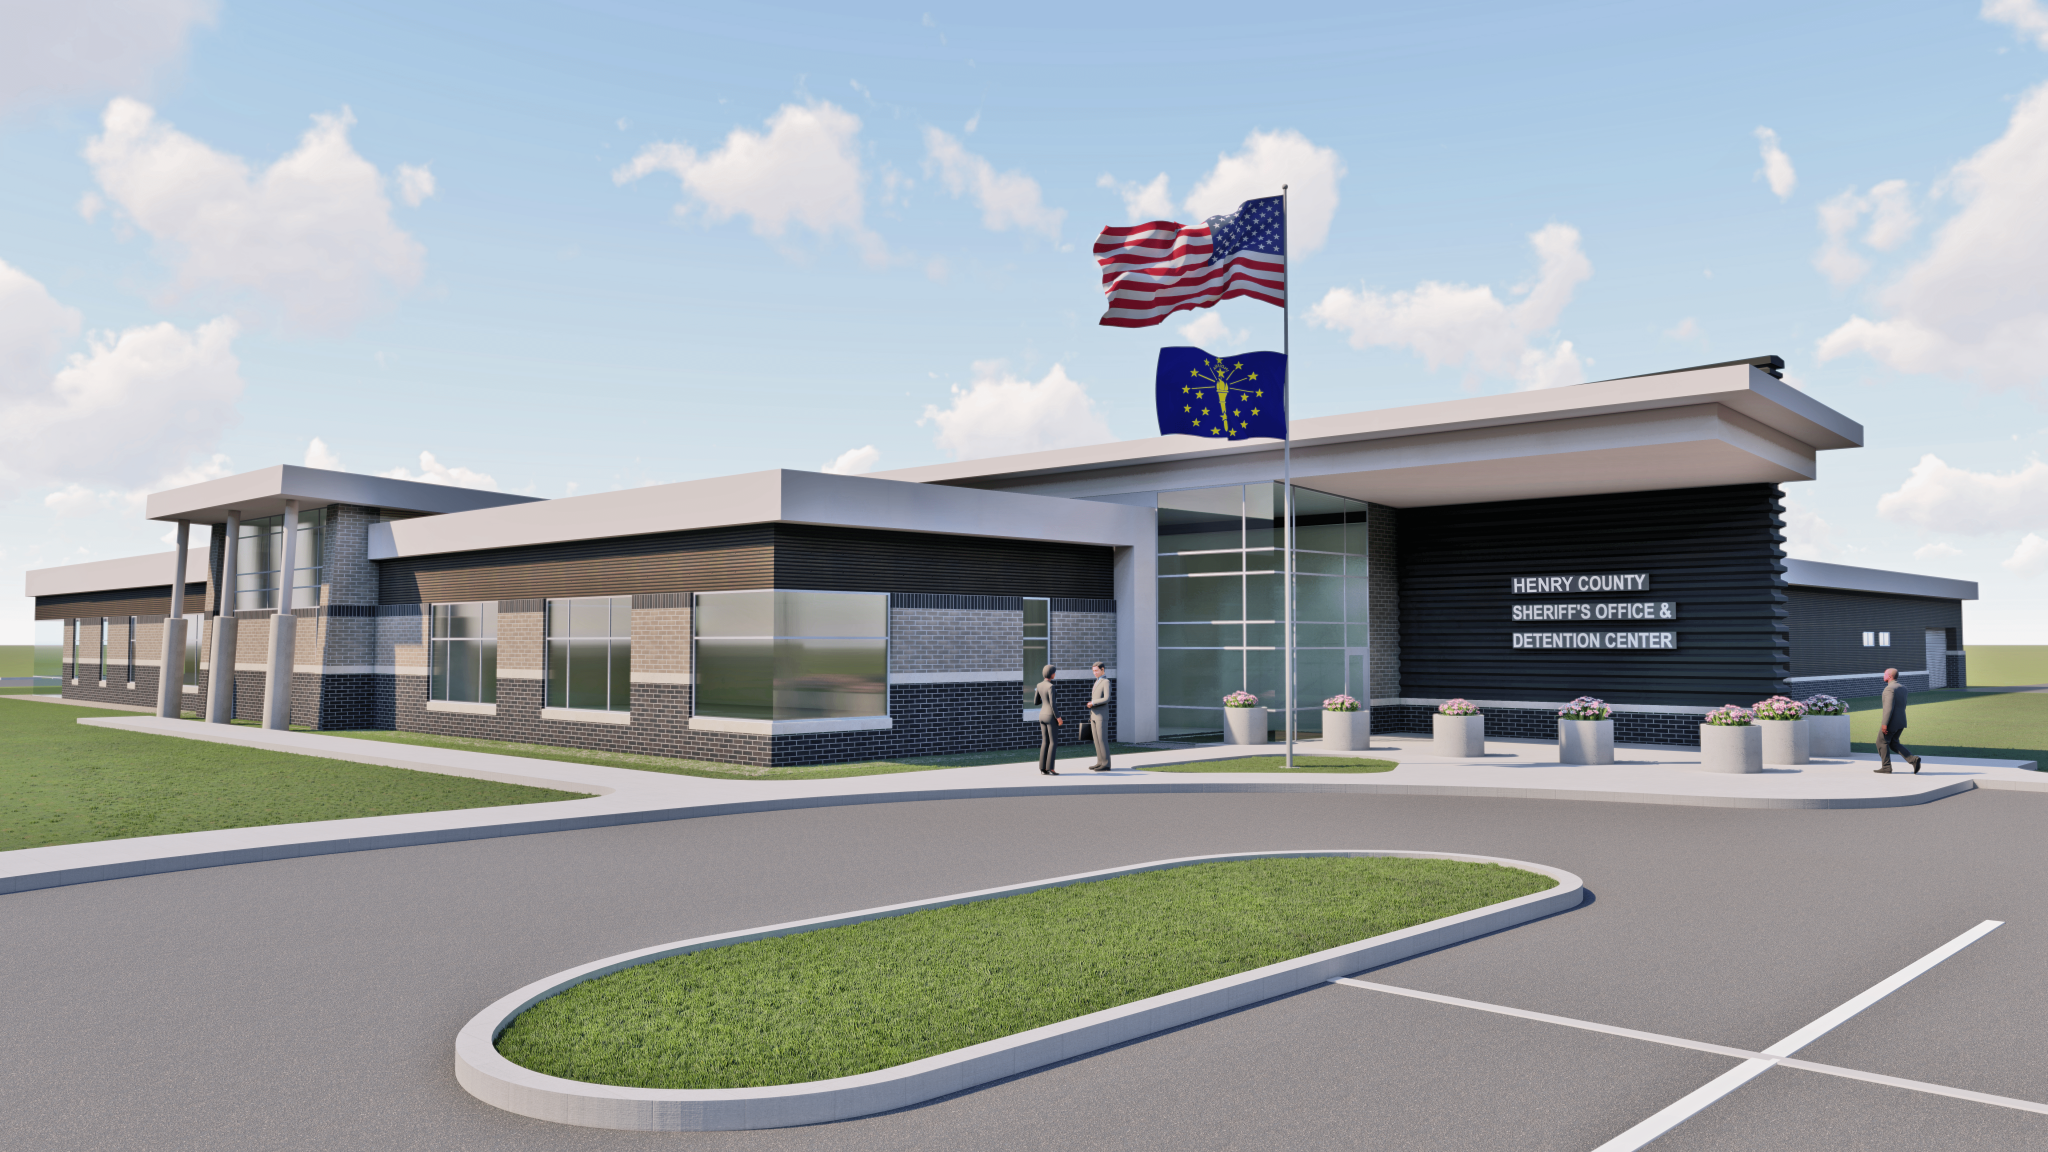 rendering of exterior of a building